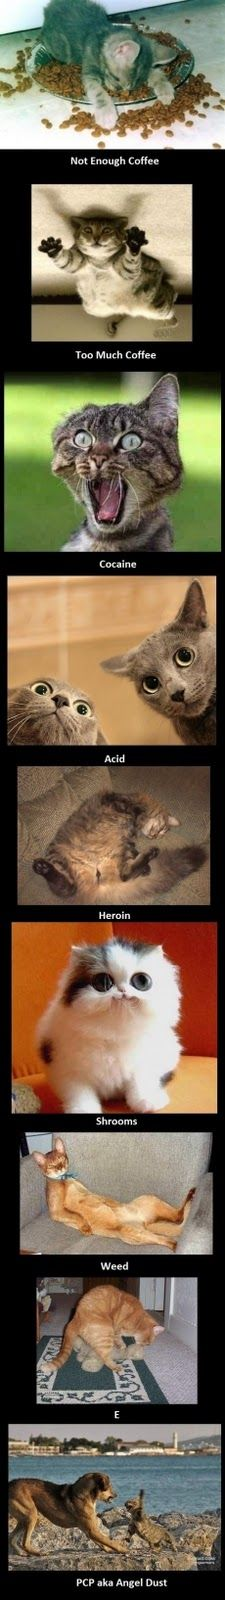 How to tell if your cat is on drugs. This seriously makes me LMAO every time I see it. And it just gets funnier the longer I look at it!